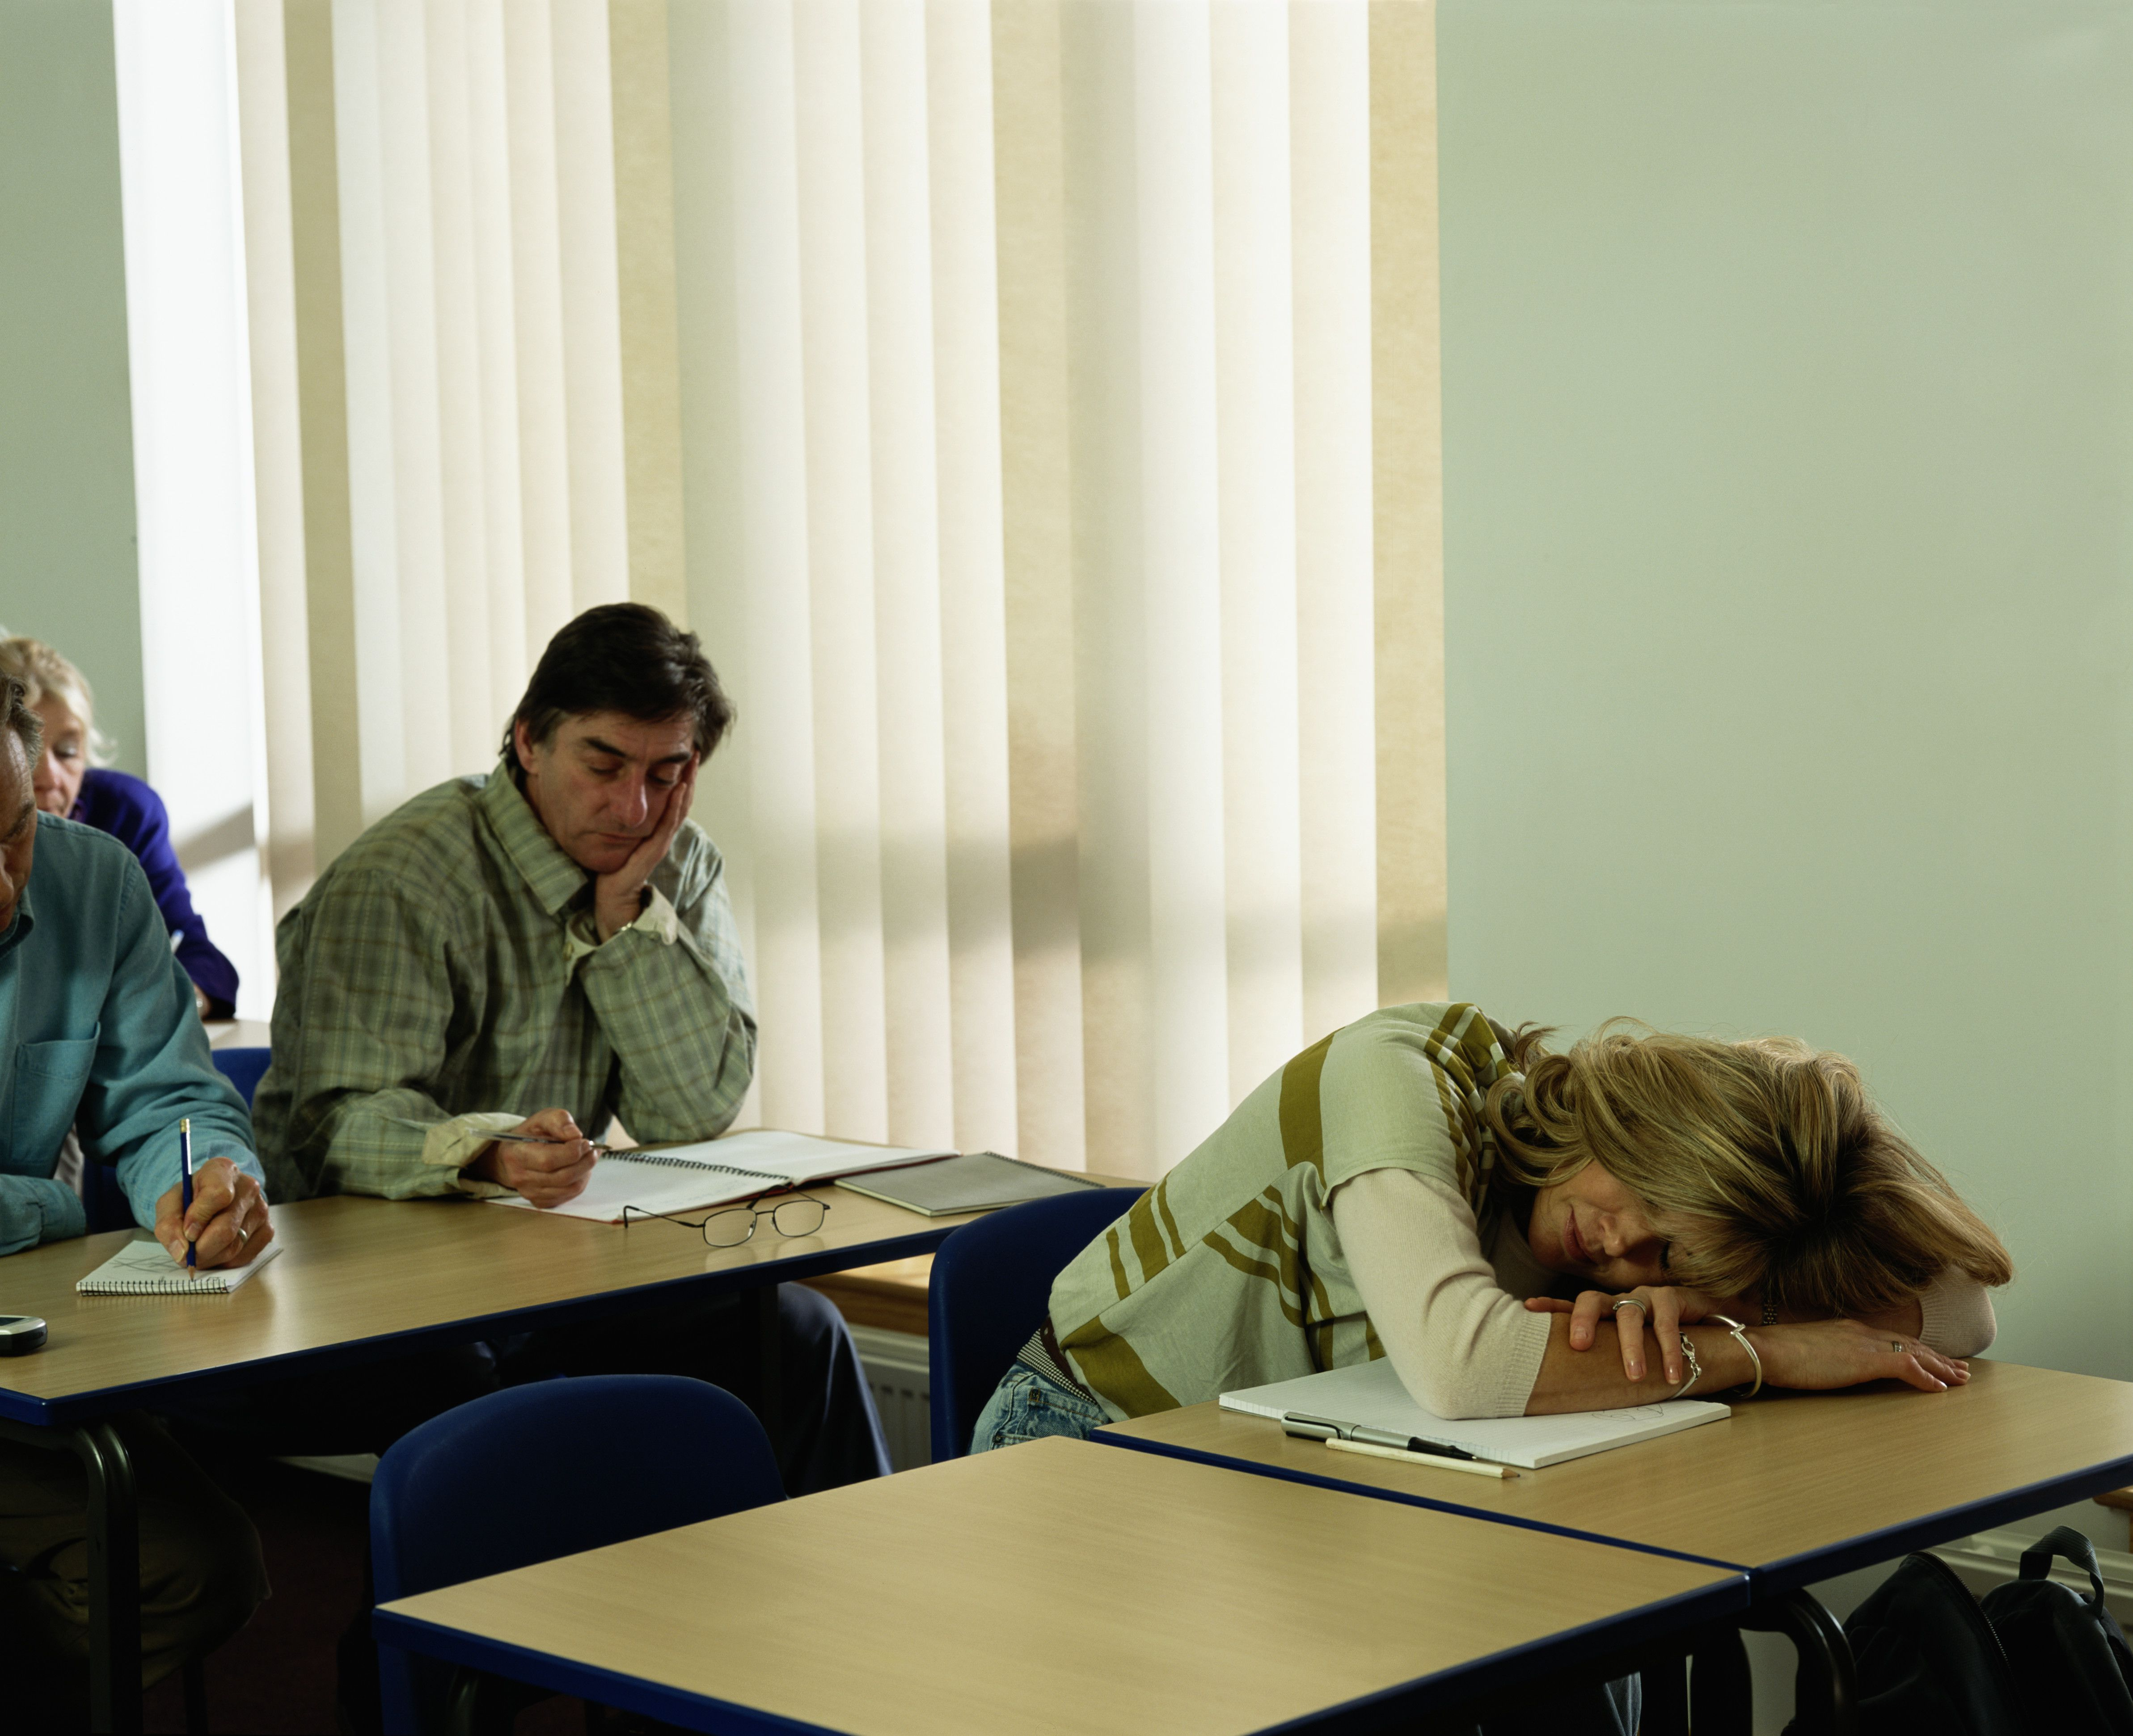 Mature students in class, woman sleeping on desk.